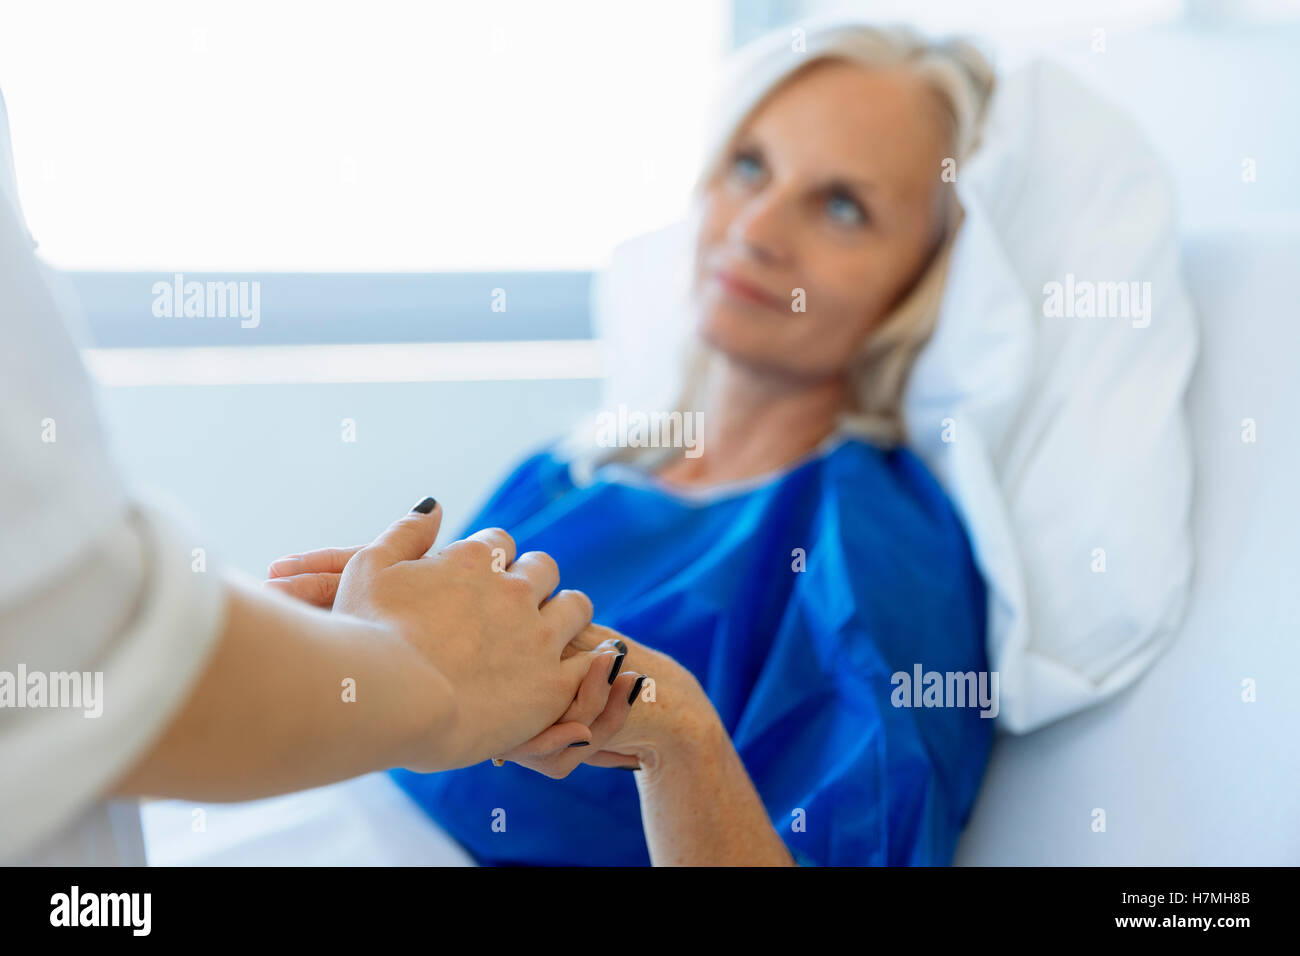 Doctor holding patient's hand in hospital room - Stock Image